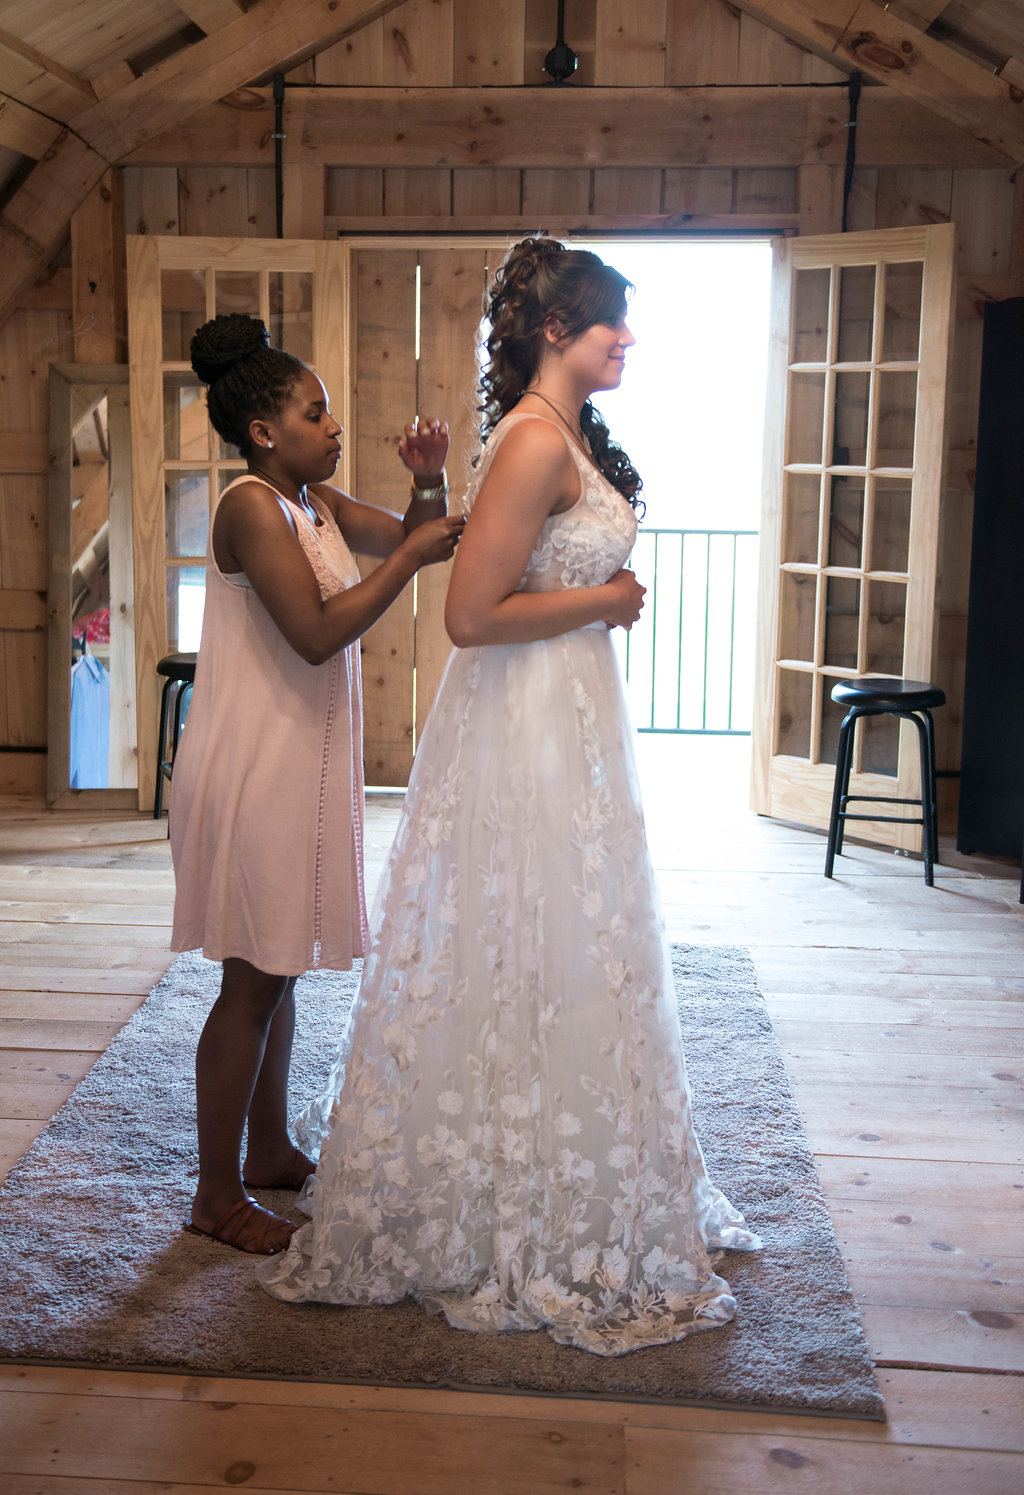 Detroit Bridal House - Hi! I'm Kristin, the owner and creative director of Detroit Bridal House. That's me in the photo on the left, pretending to be a fairy-godmother. Detroit Bridal House is a little girl's dream come true. I always dreamt of opening a bridal shop that fed the creative soul, but was also a comfortable and enjoyable experience.Shopping at Detroit Bridal House is more than shopping for a wedding gown, it's a Detroit experience. Shopping at Detroit Bridal House is time spent with family and friends and making memories that will last a lifetime. The collections carried in Detroit Bridal House are unique and fresh, which makes shopping just a little more fun!I can't wait to meet you!